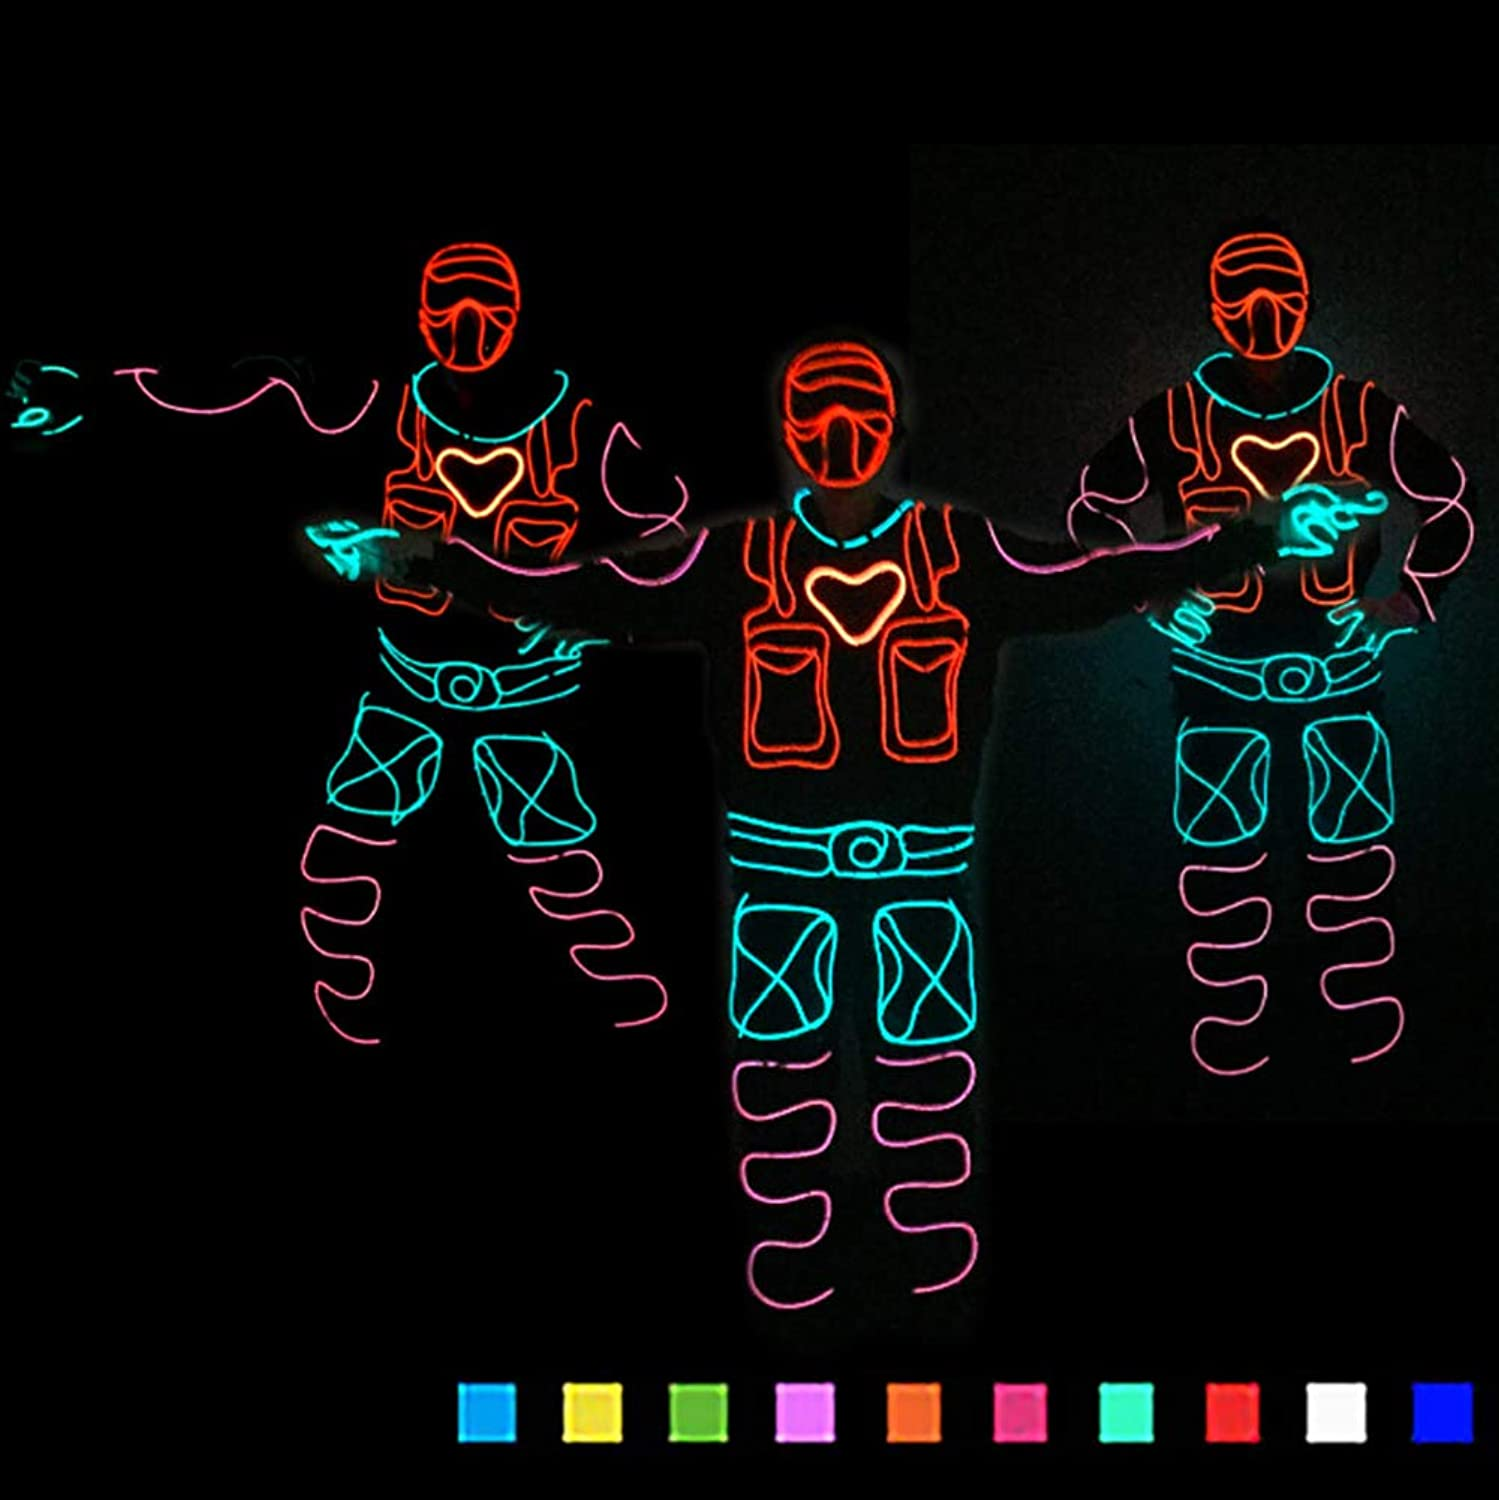 DHTW&R EL Cold light Night show Fluorescent Dance Glowing clothes Lights up Stick Figure Man Costume Battery Powered Masquerade party Costume